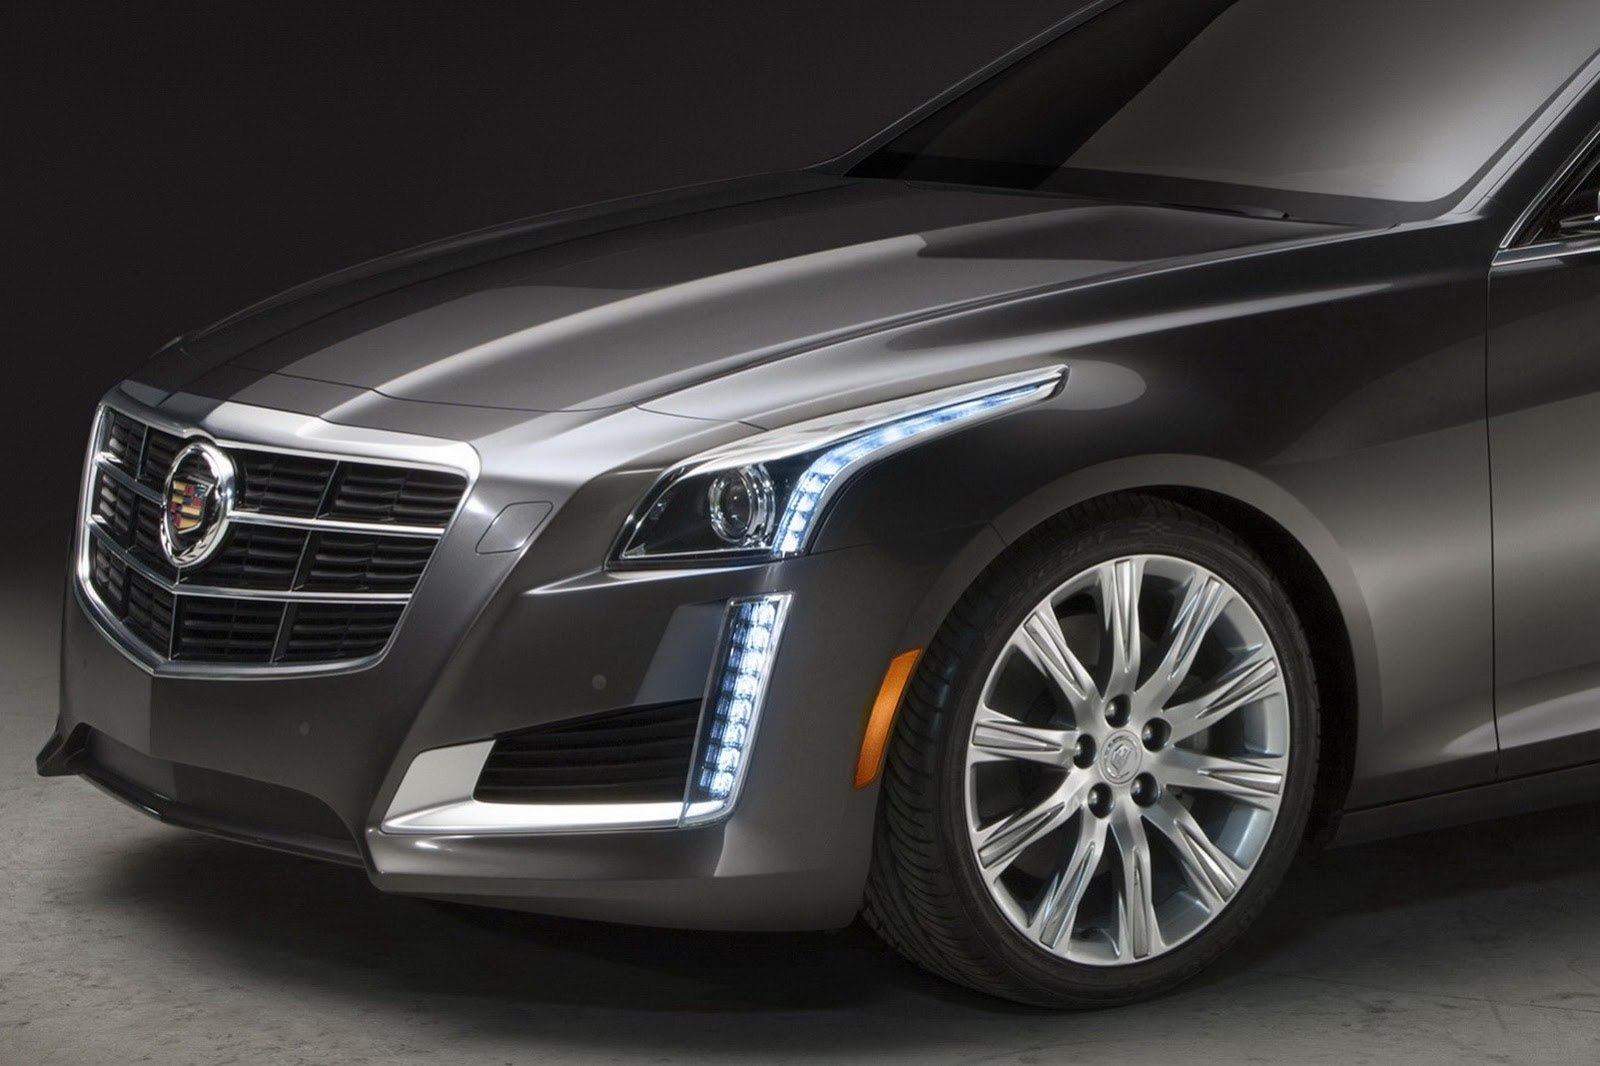 Cadillac Explains Its New Aggressive Headlight Design